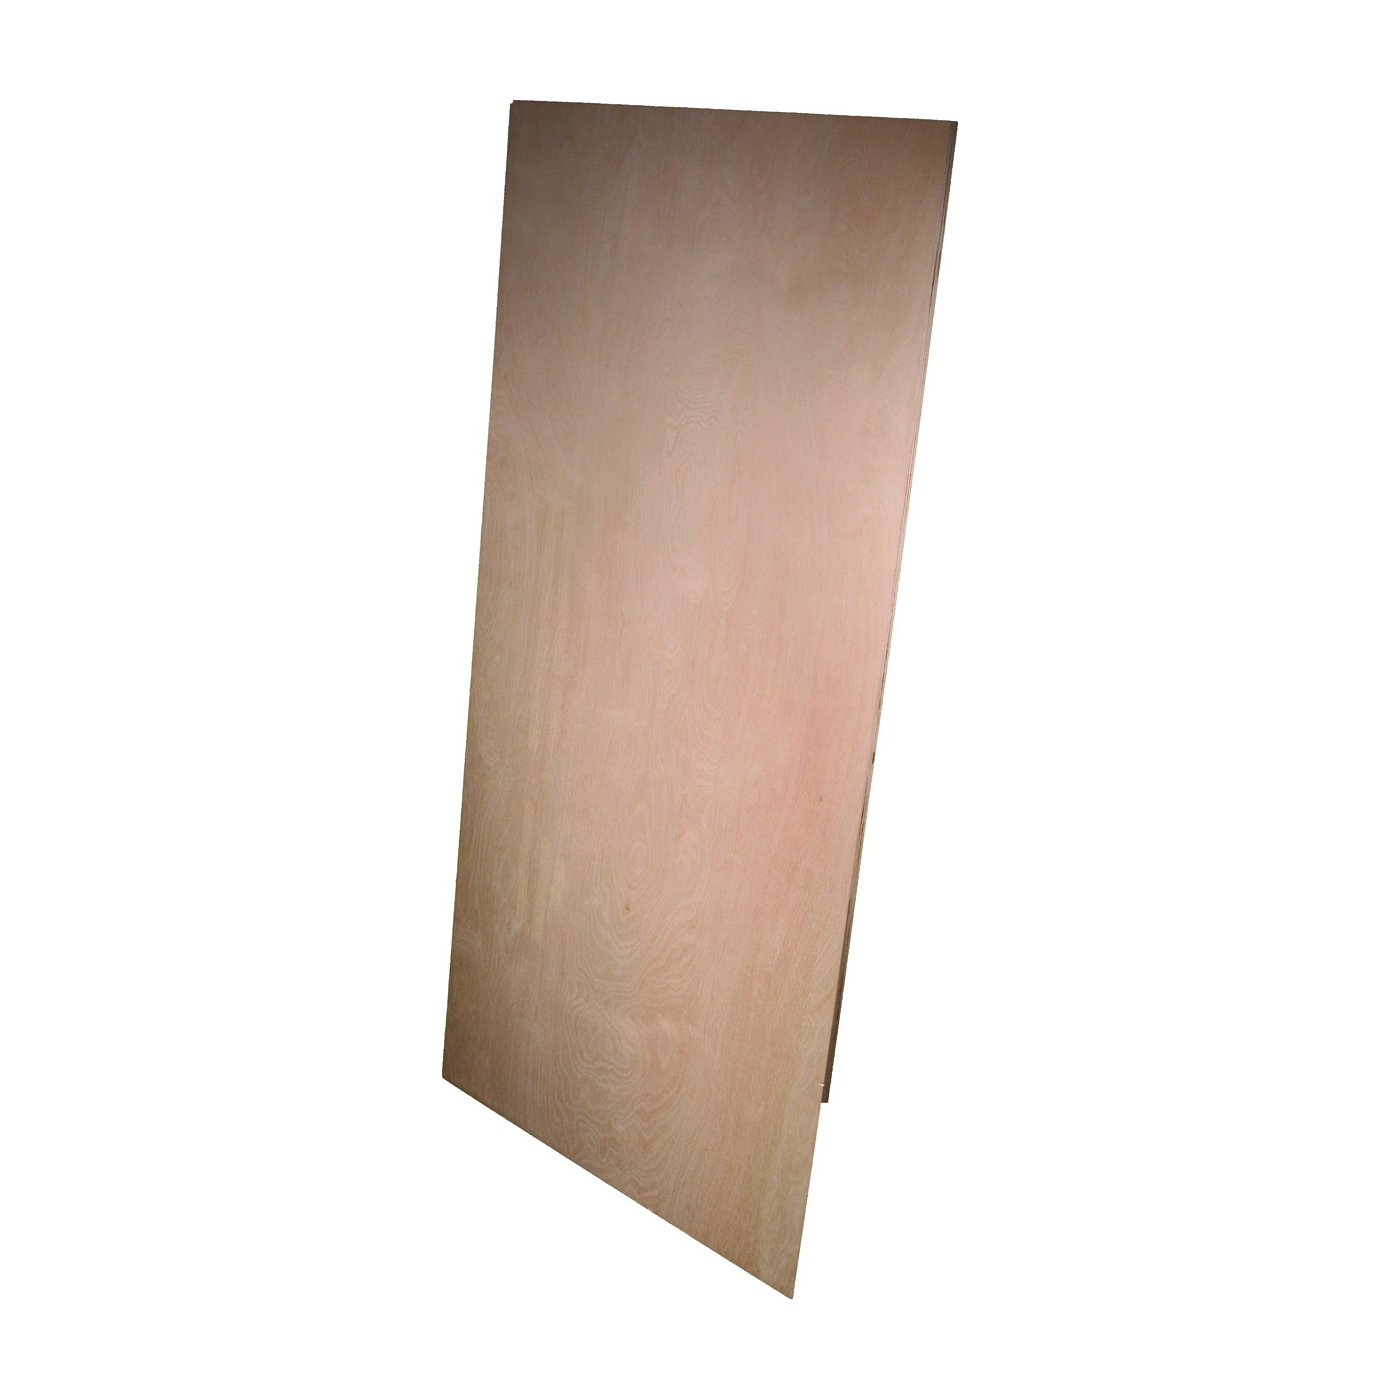 Picture of ALEXANDRIA Moulding PY002-PY048C Sanded Face Plywood